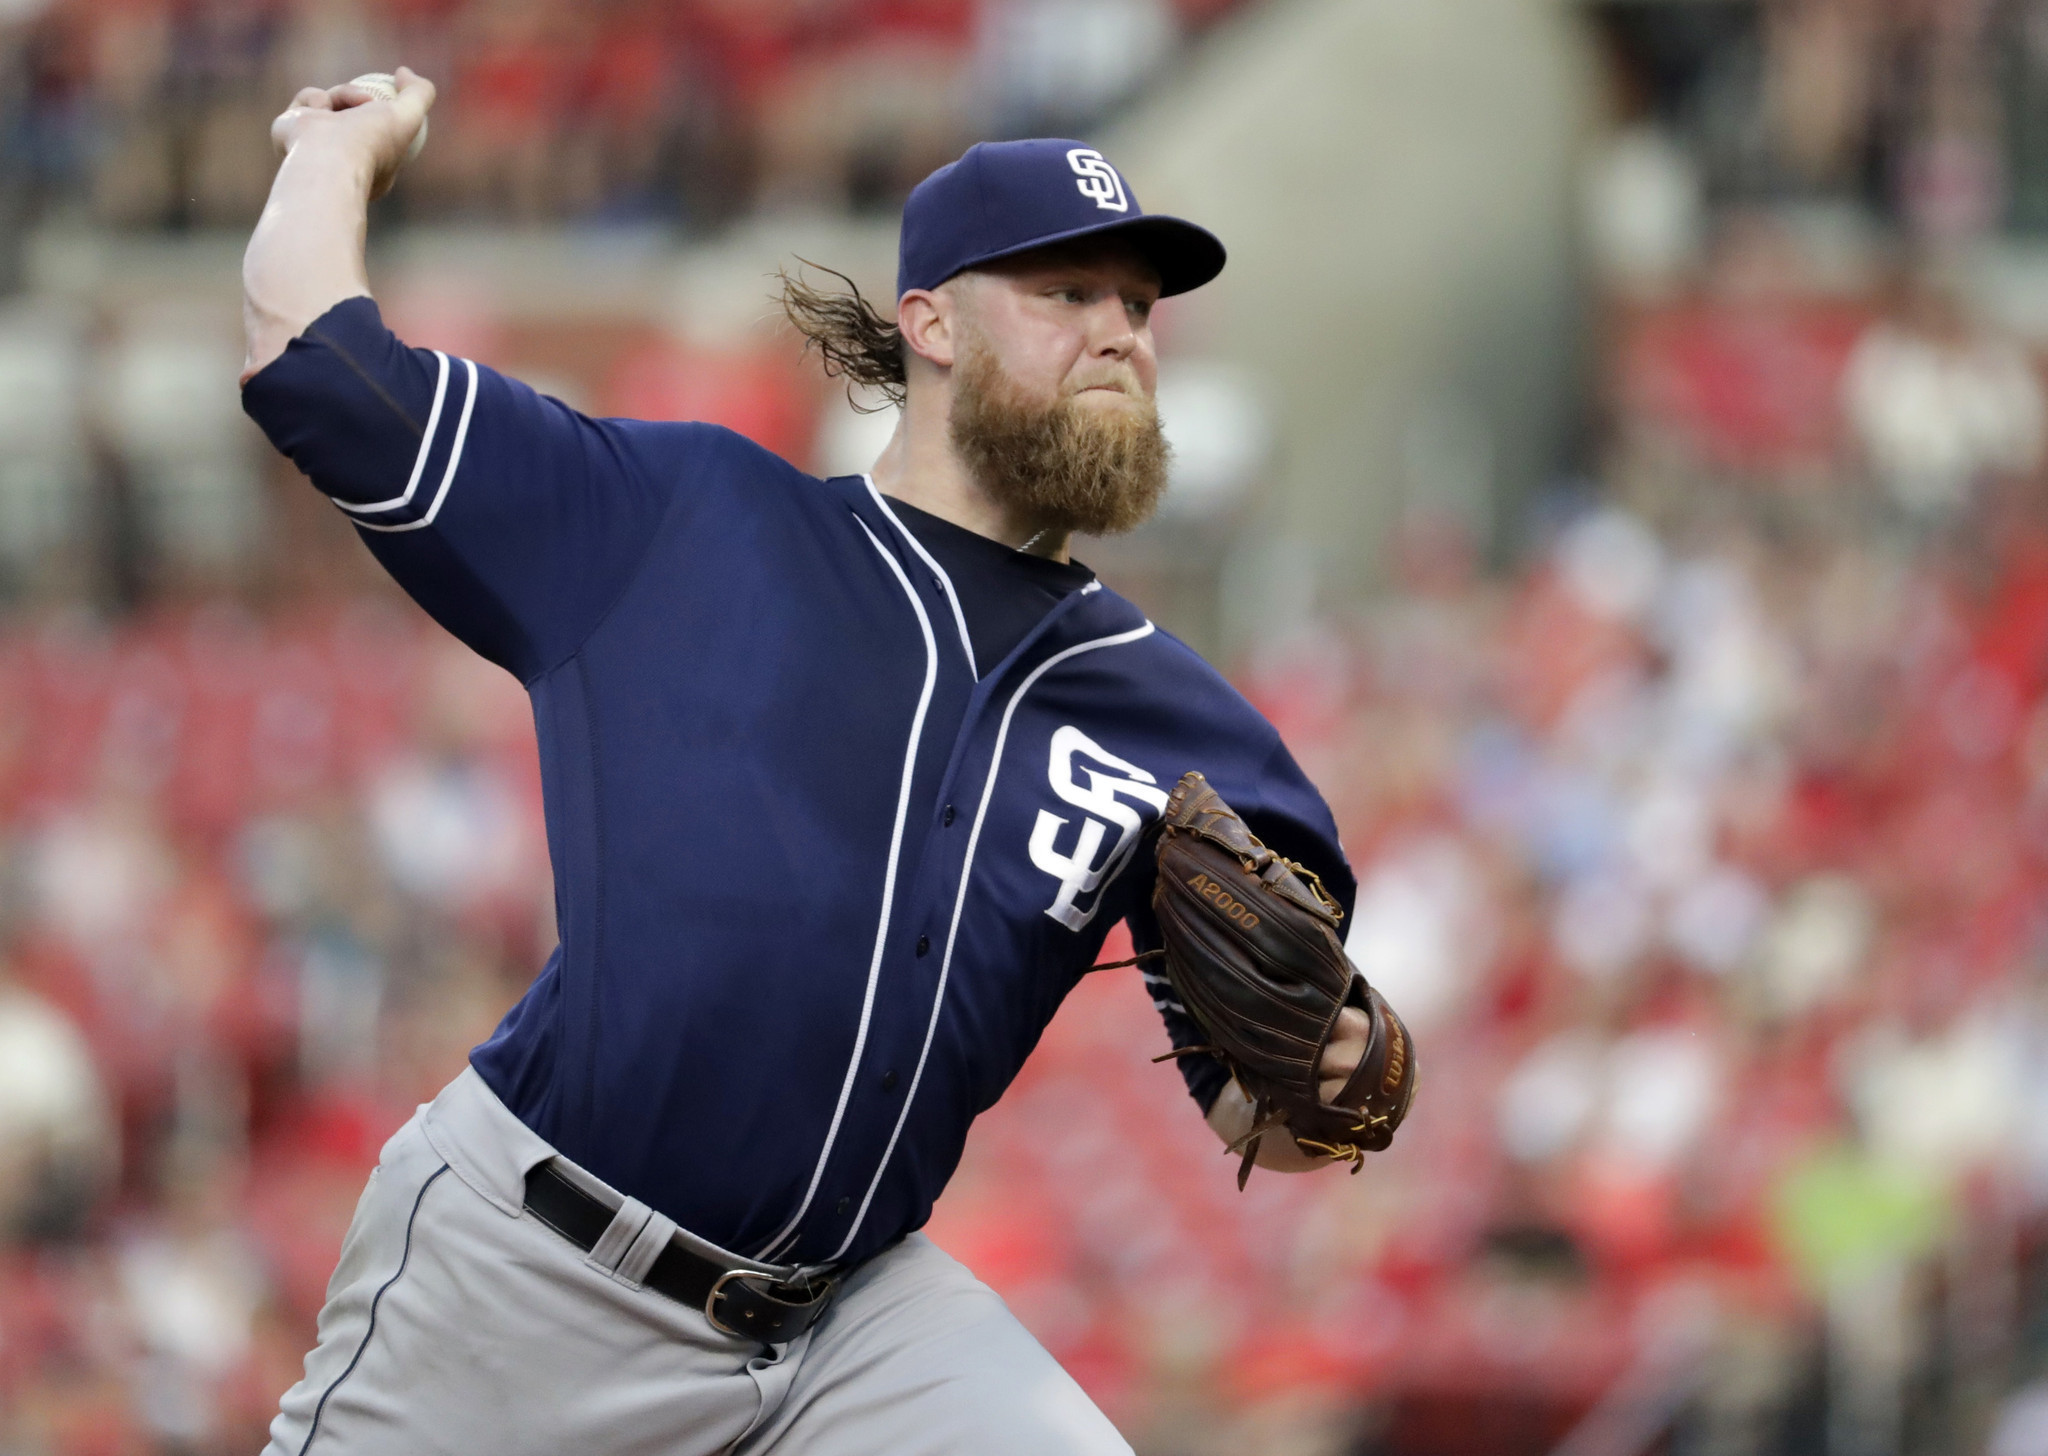 Bal-another-starting-pitcher-off-the-market-as-padres-cashner-goes-to-marlins-20160729